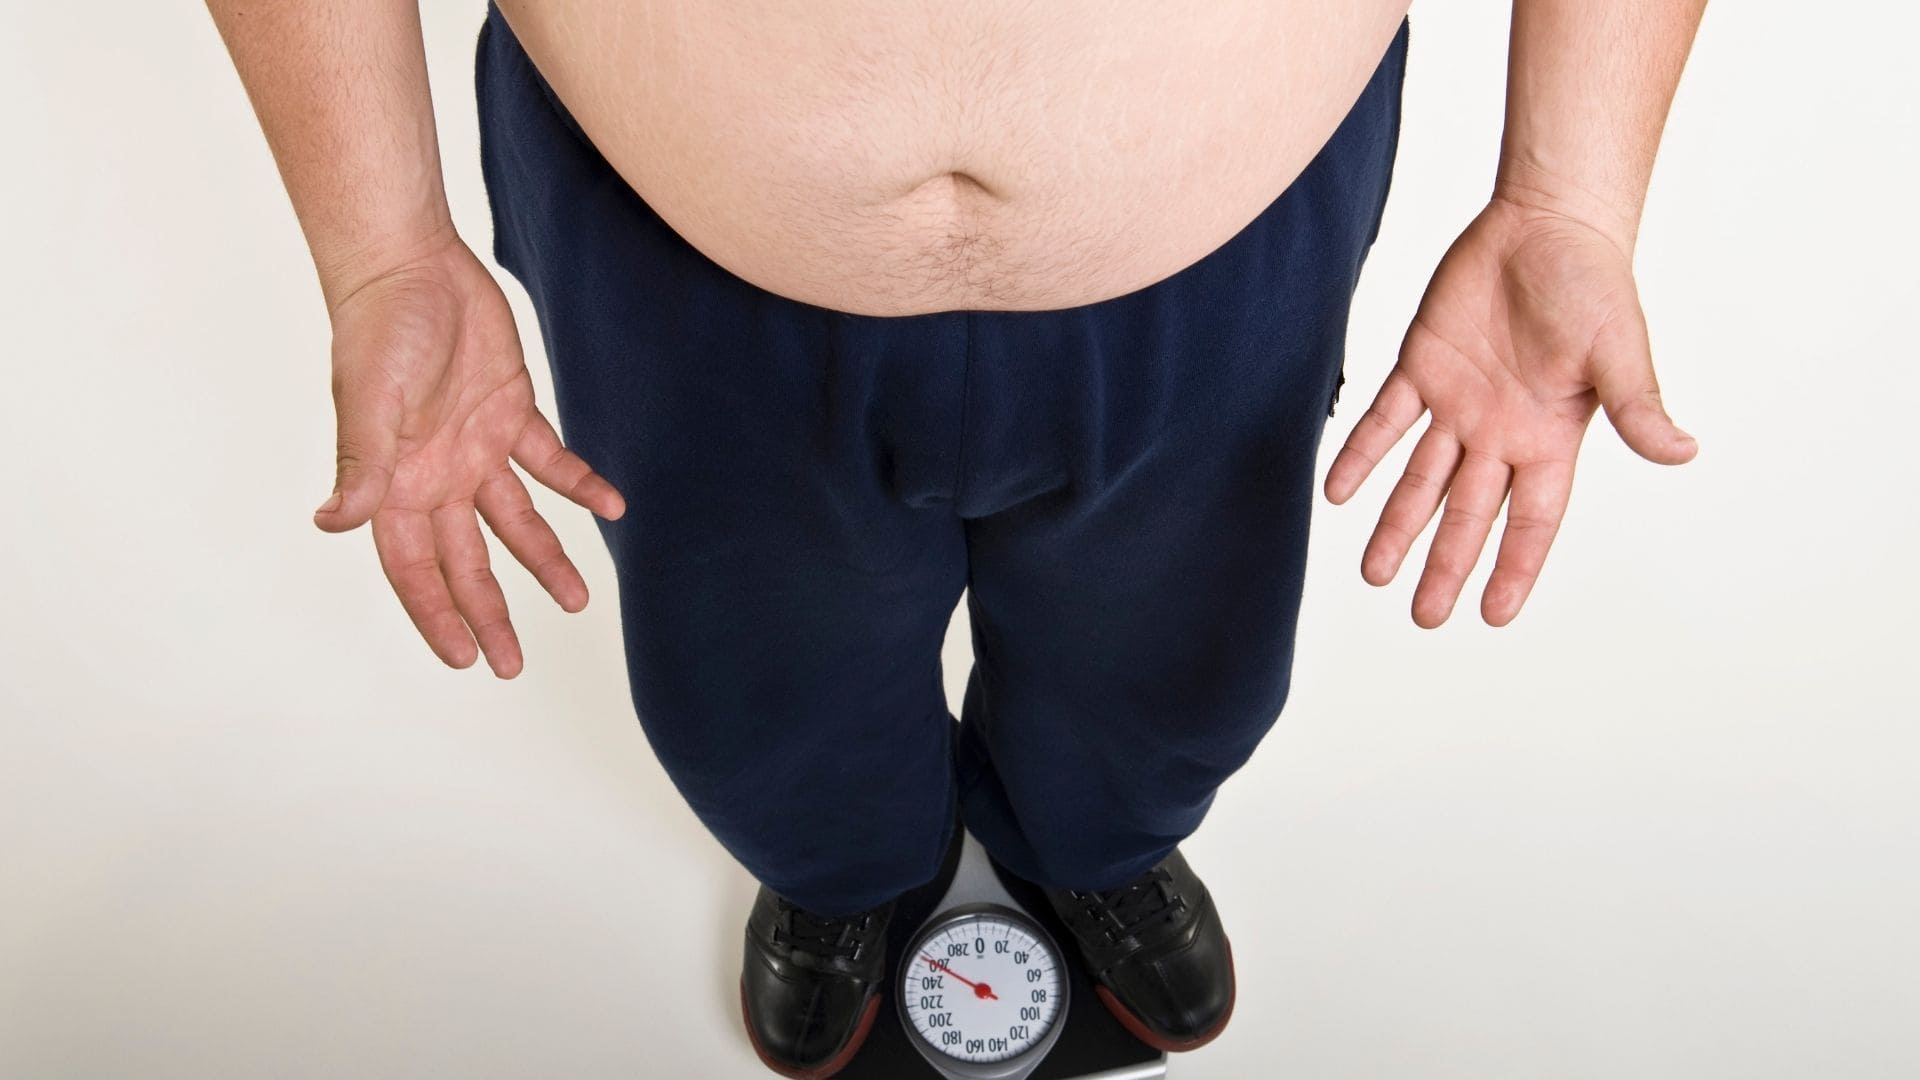 I Didn't Follow the Pre-Op Diet Before Weight Loss Surgery; What Can I Do Now?